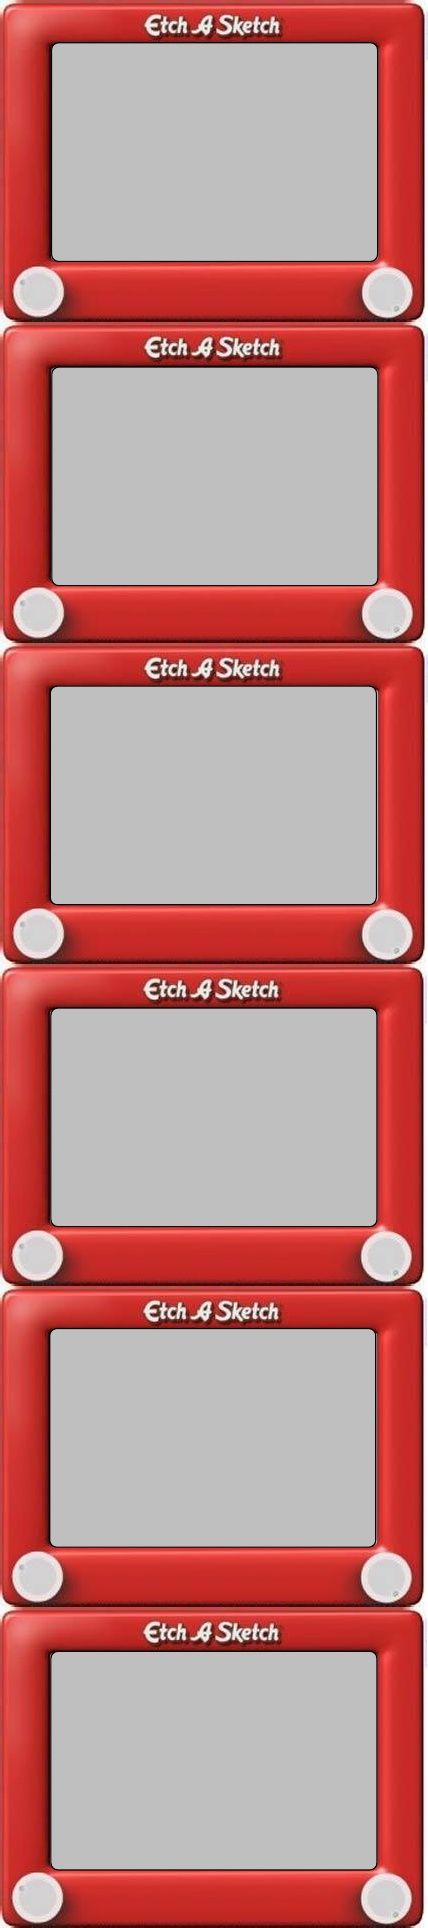 Etch A Sketch printable labels I found on rook17's blog. So cute and thanks for sharing!